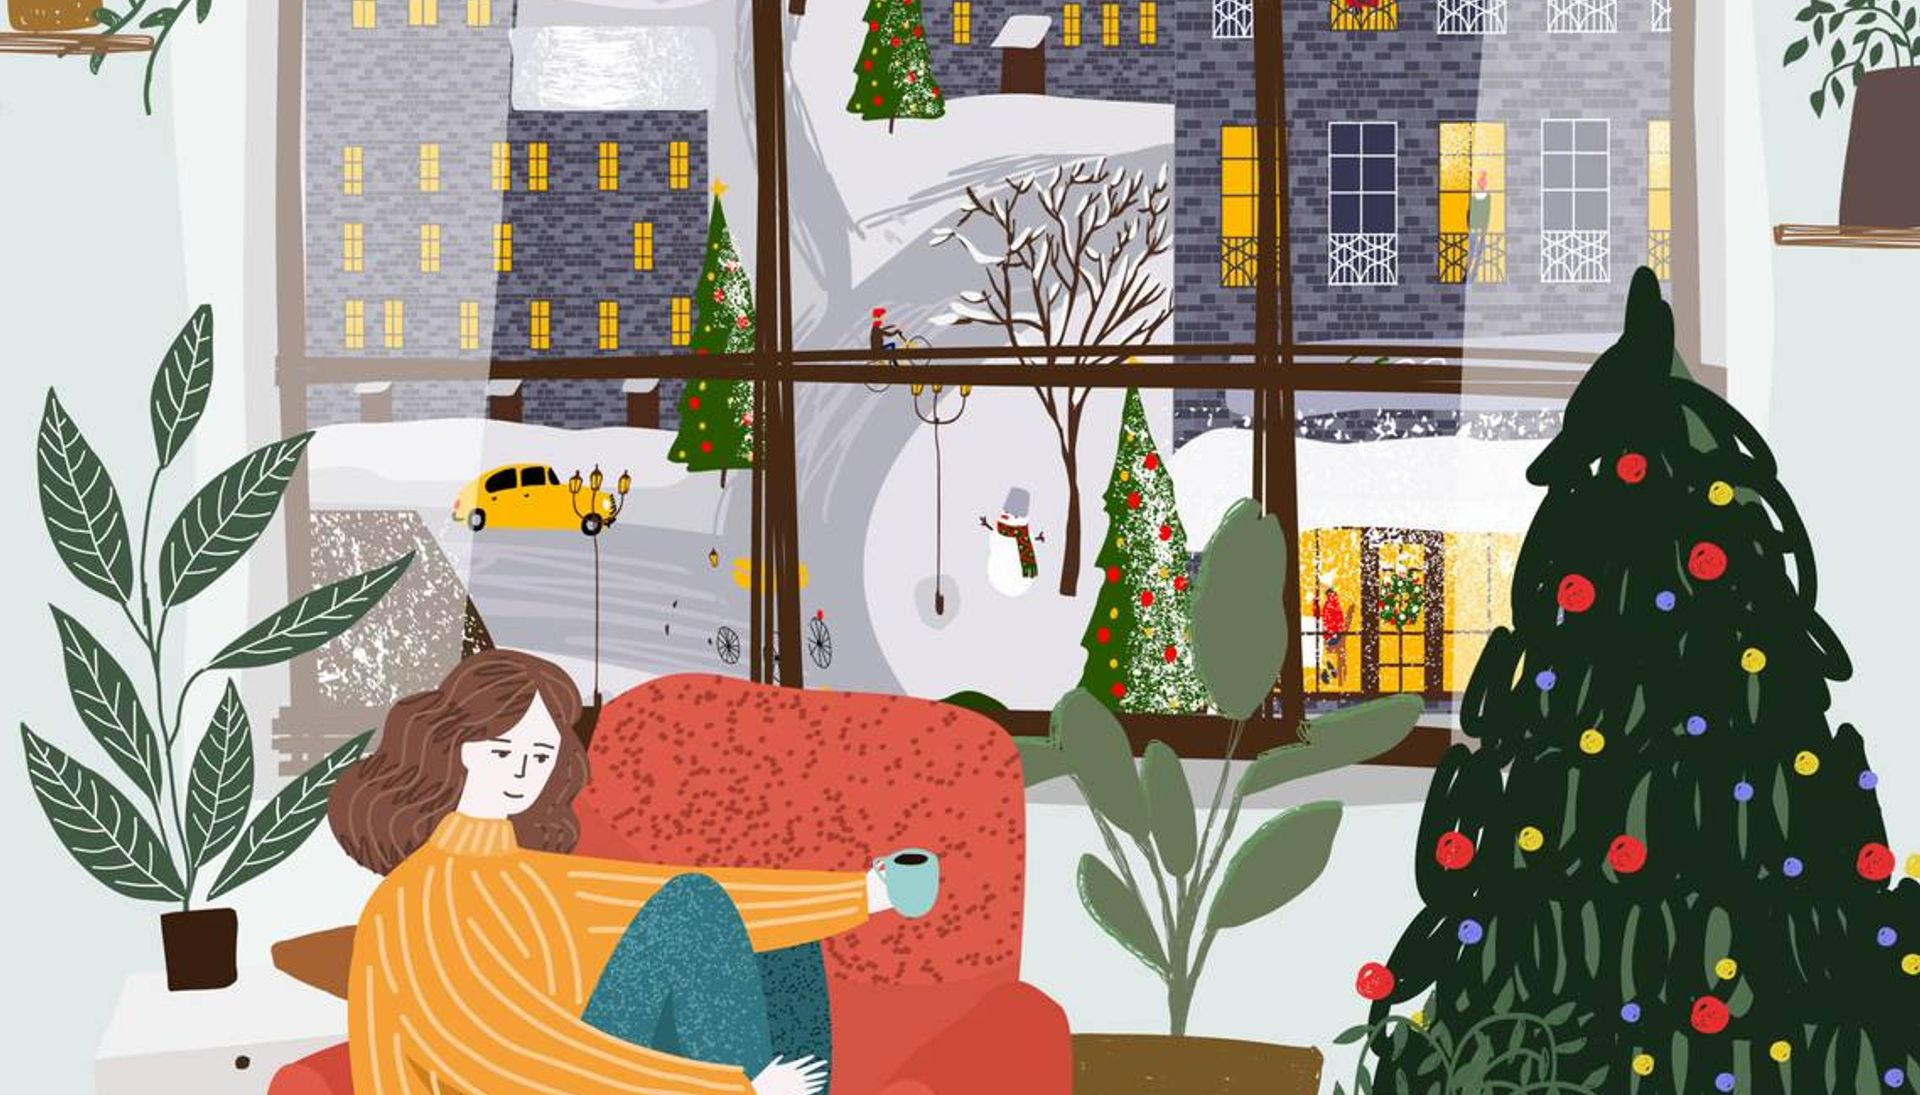 Illustration of woman sitting on red chair holding a cup of coffee and relaxing in a festively decorated apartment